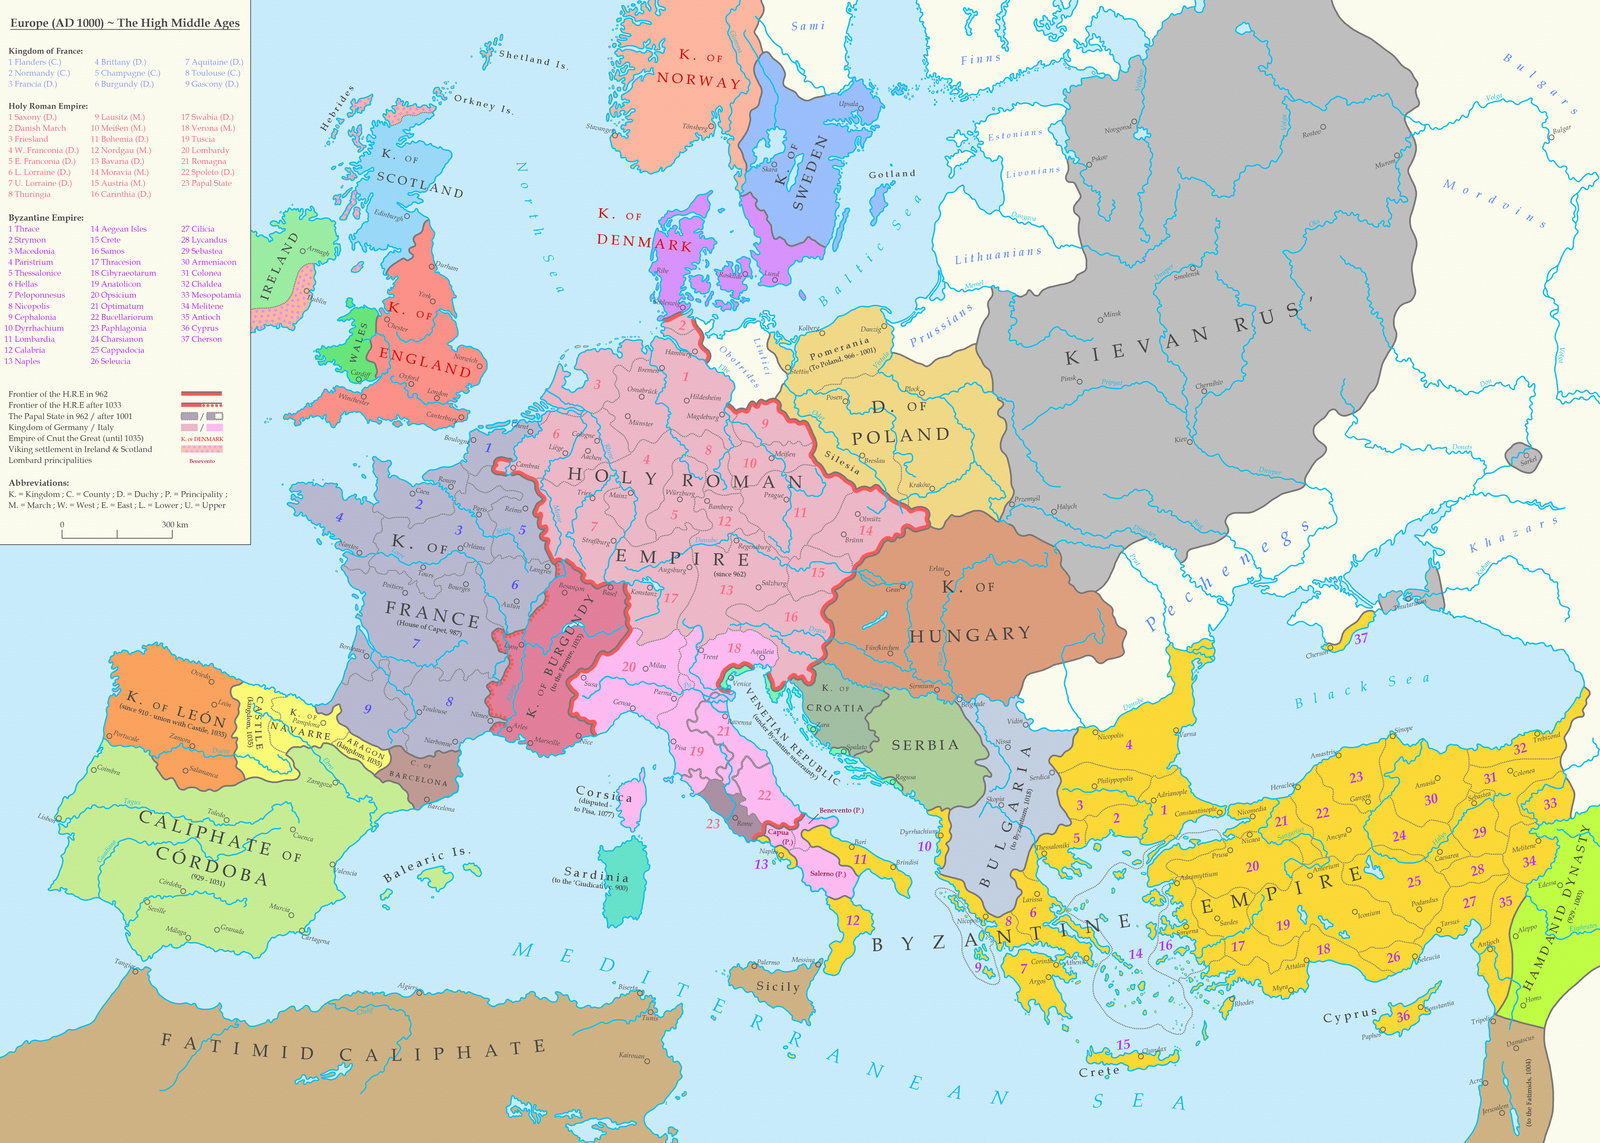 Map of Europe in 1000 A.D.